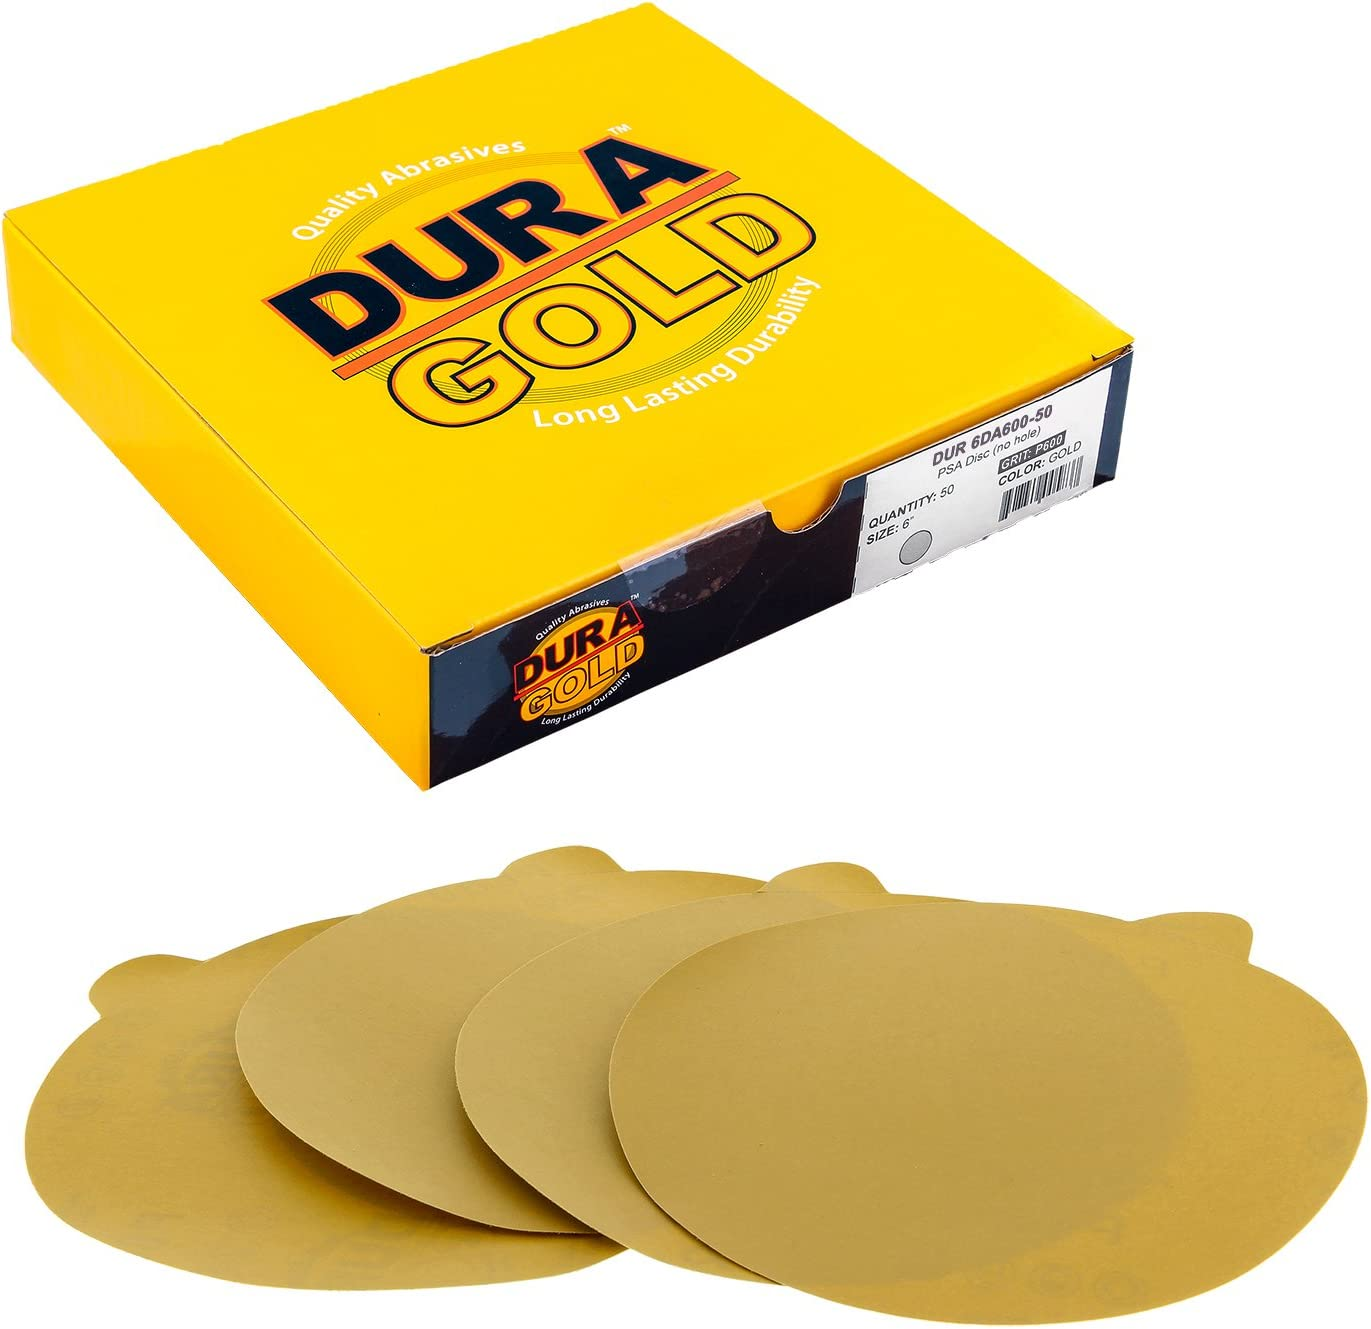 Box of 10 60 Grit High-Performance Fast Cutting Aluminum Oxide Abrasive Dura-Gold Premium 9 Drywall Sanding Discs - Sandpaper Discs with PSA Self Adhesive Stickyback For Drywall Power Sander